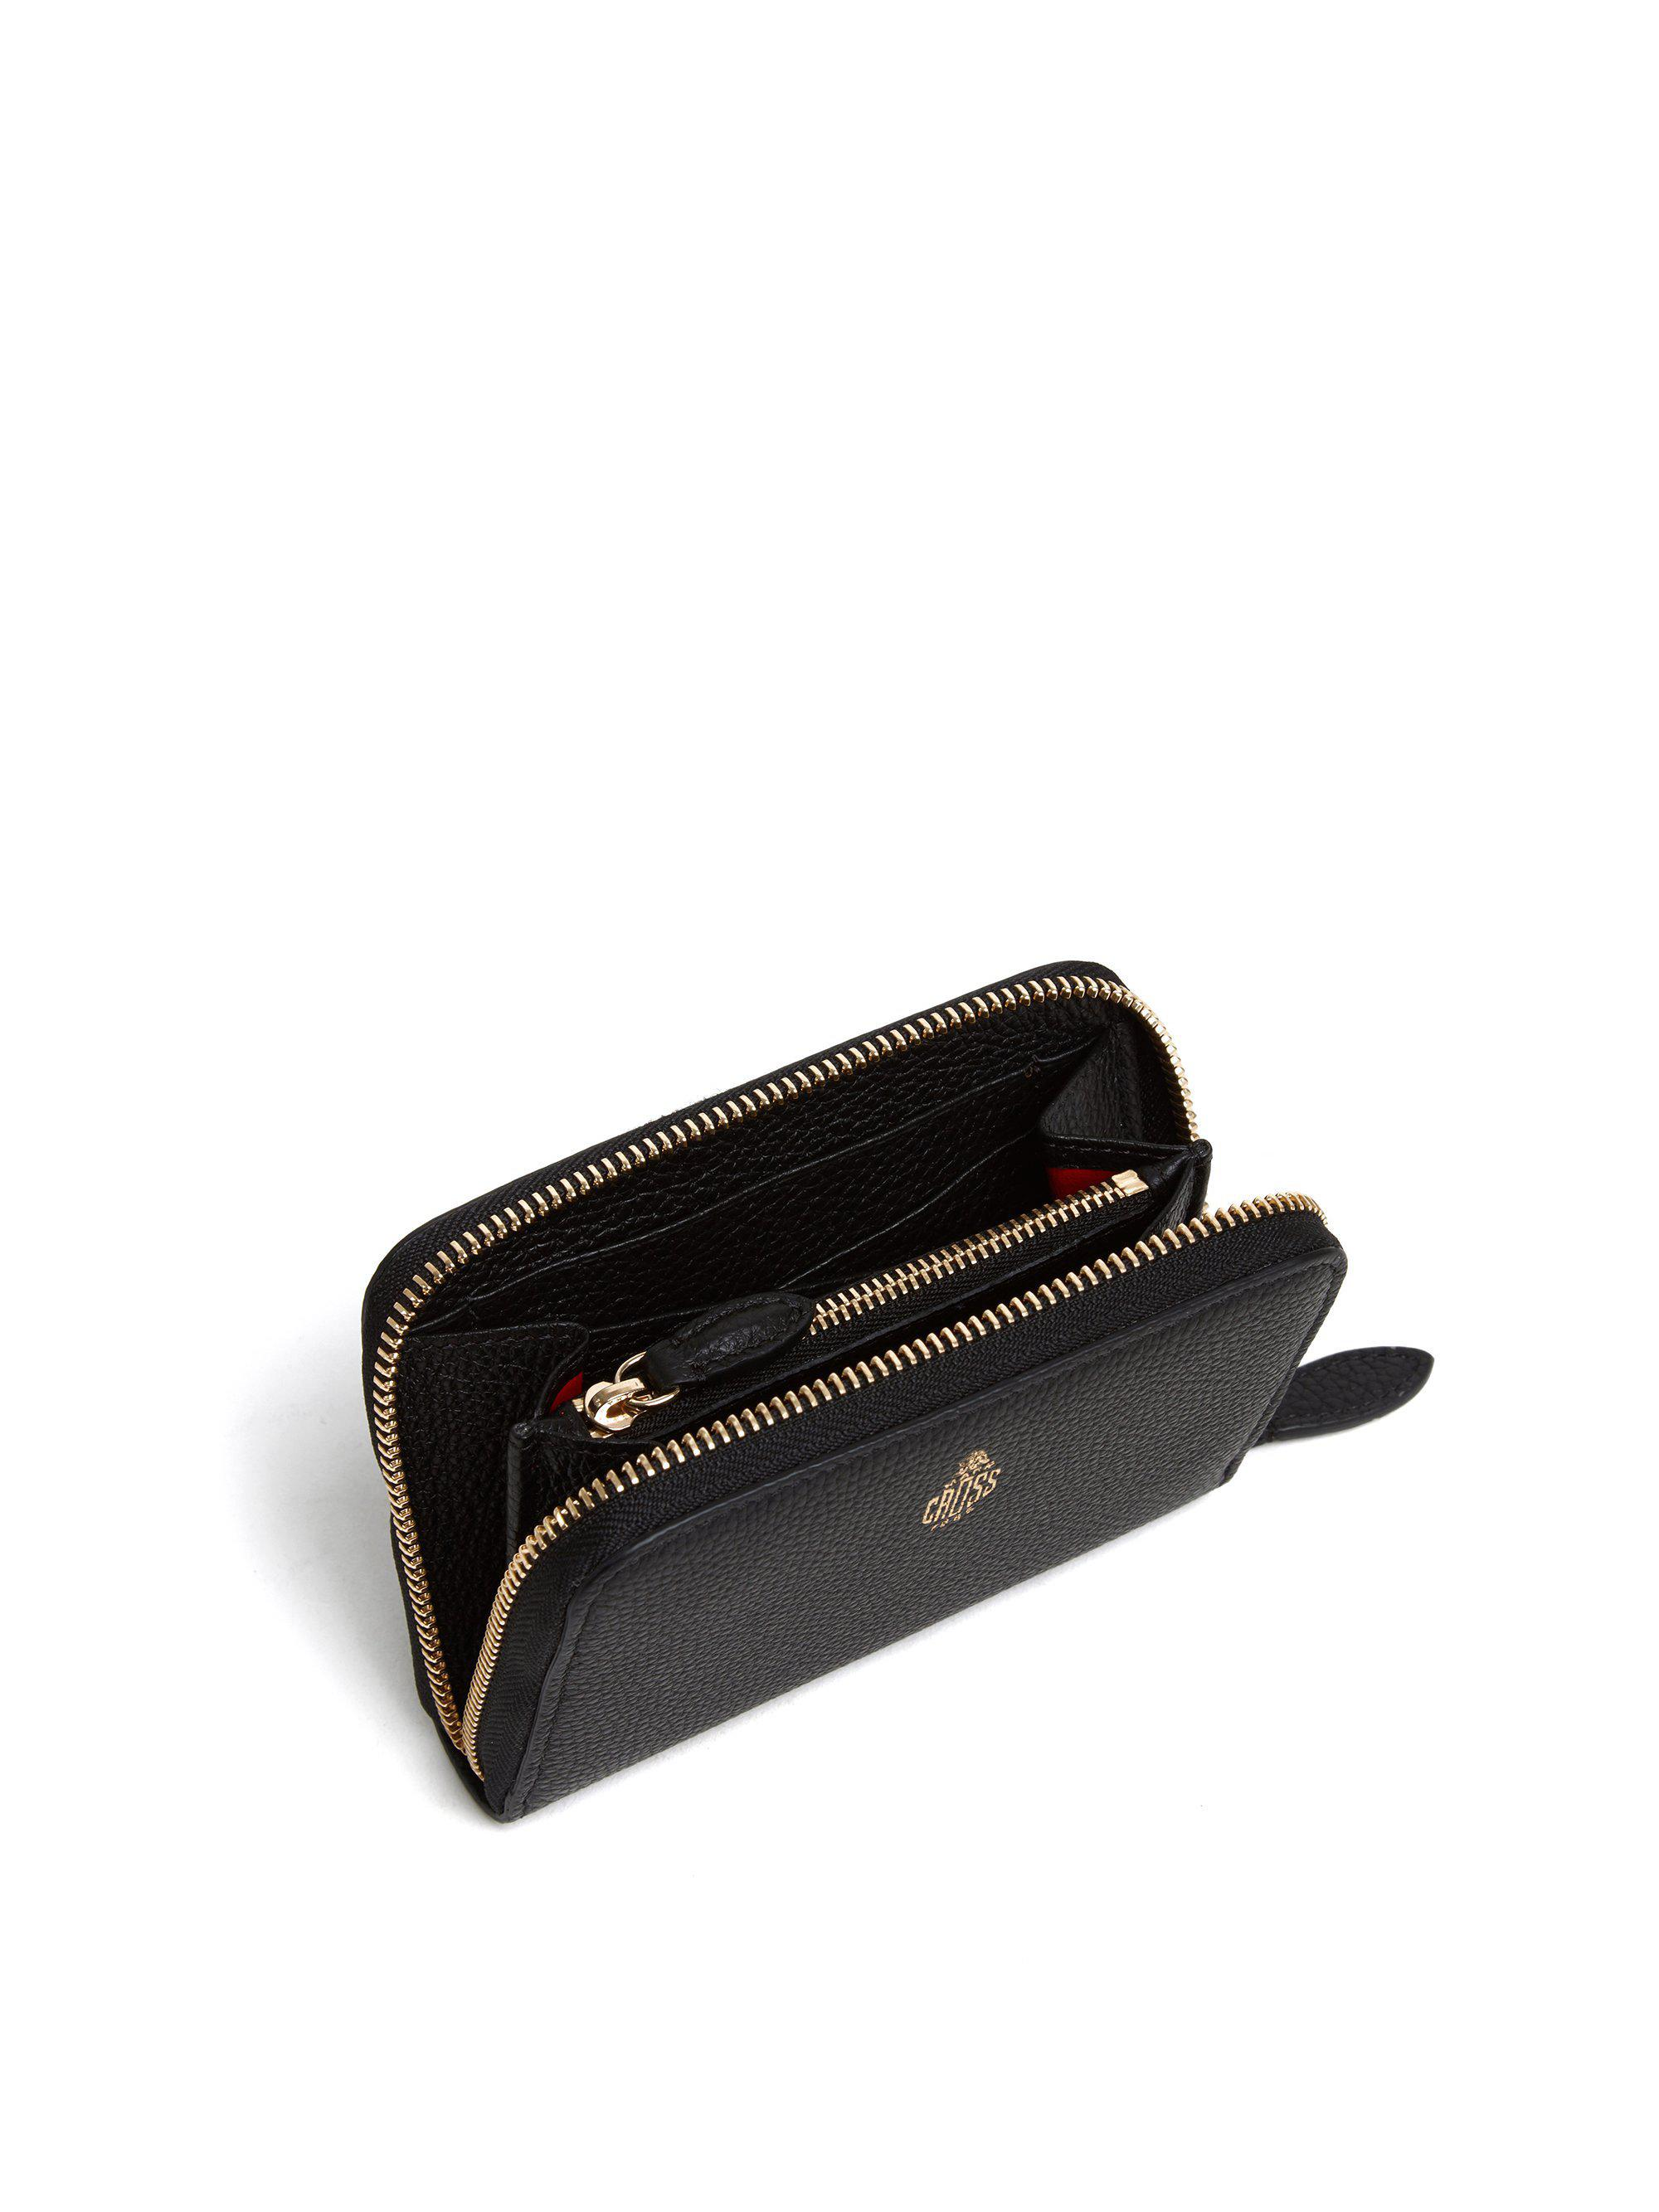 Small Leather Zip Wallet 4